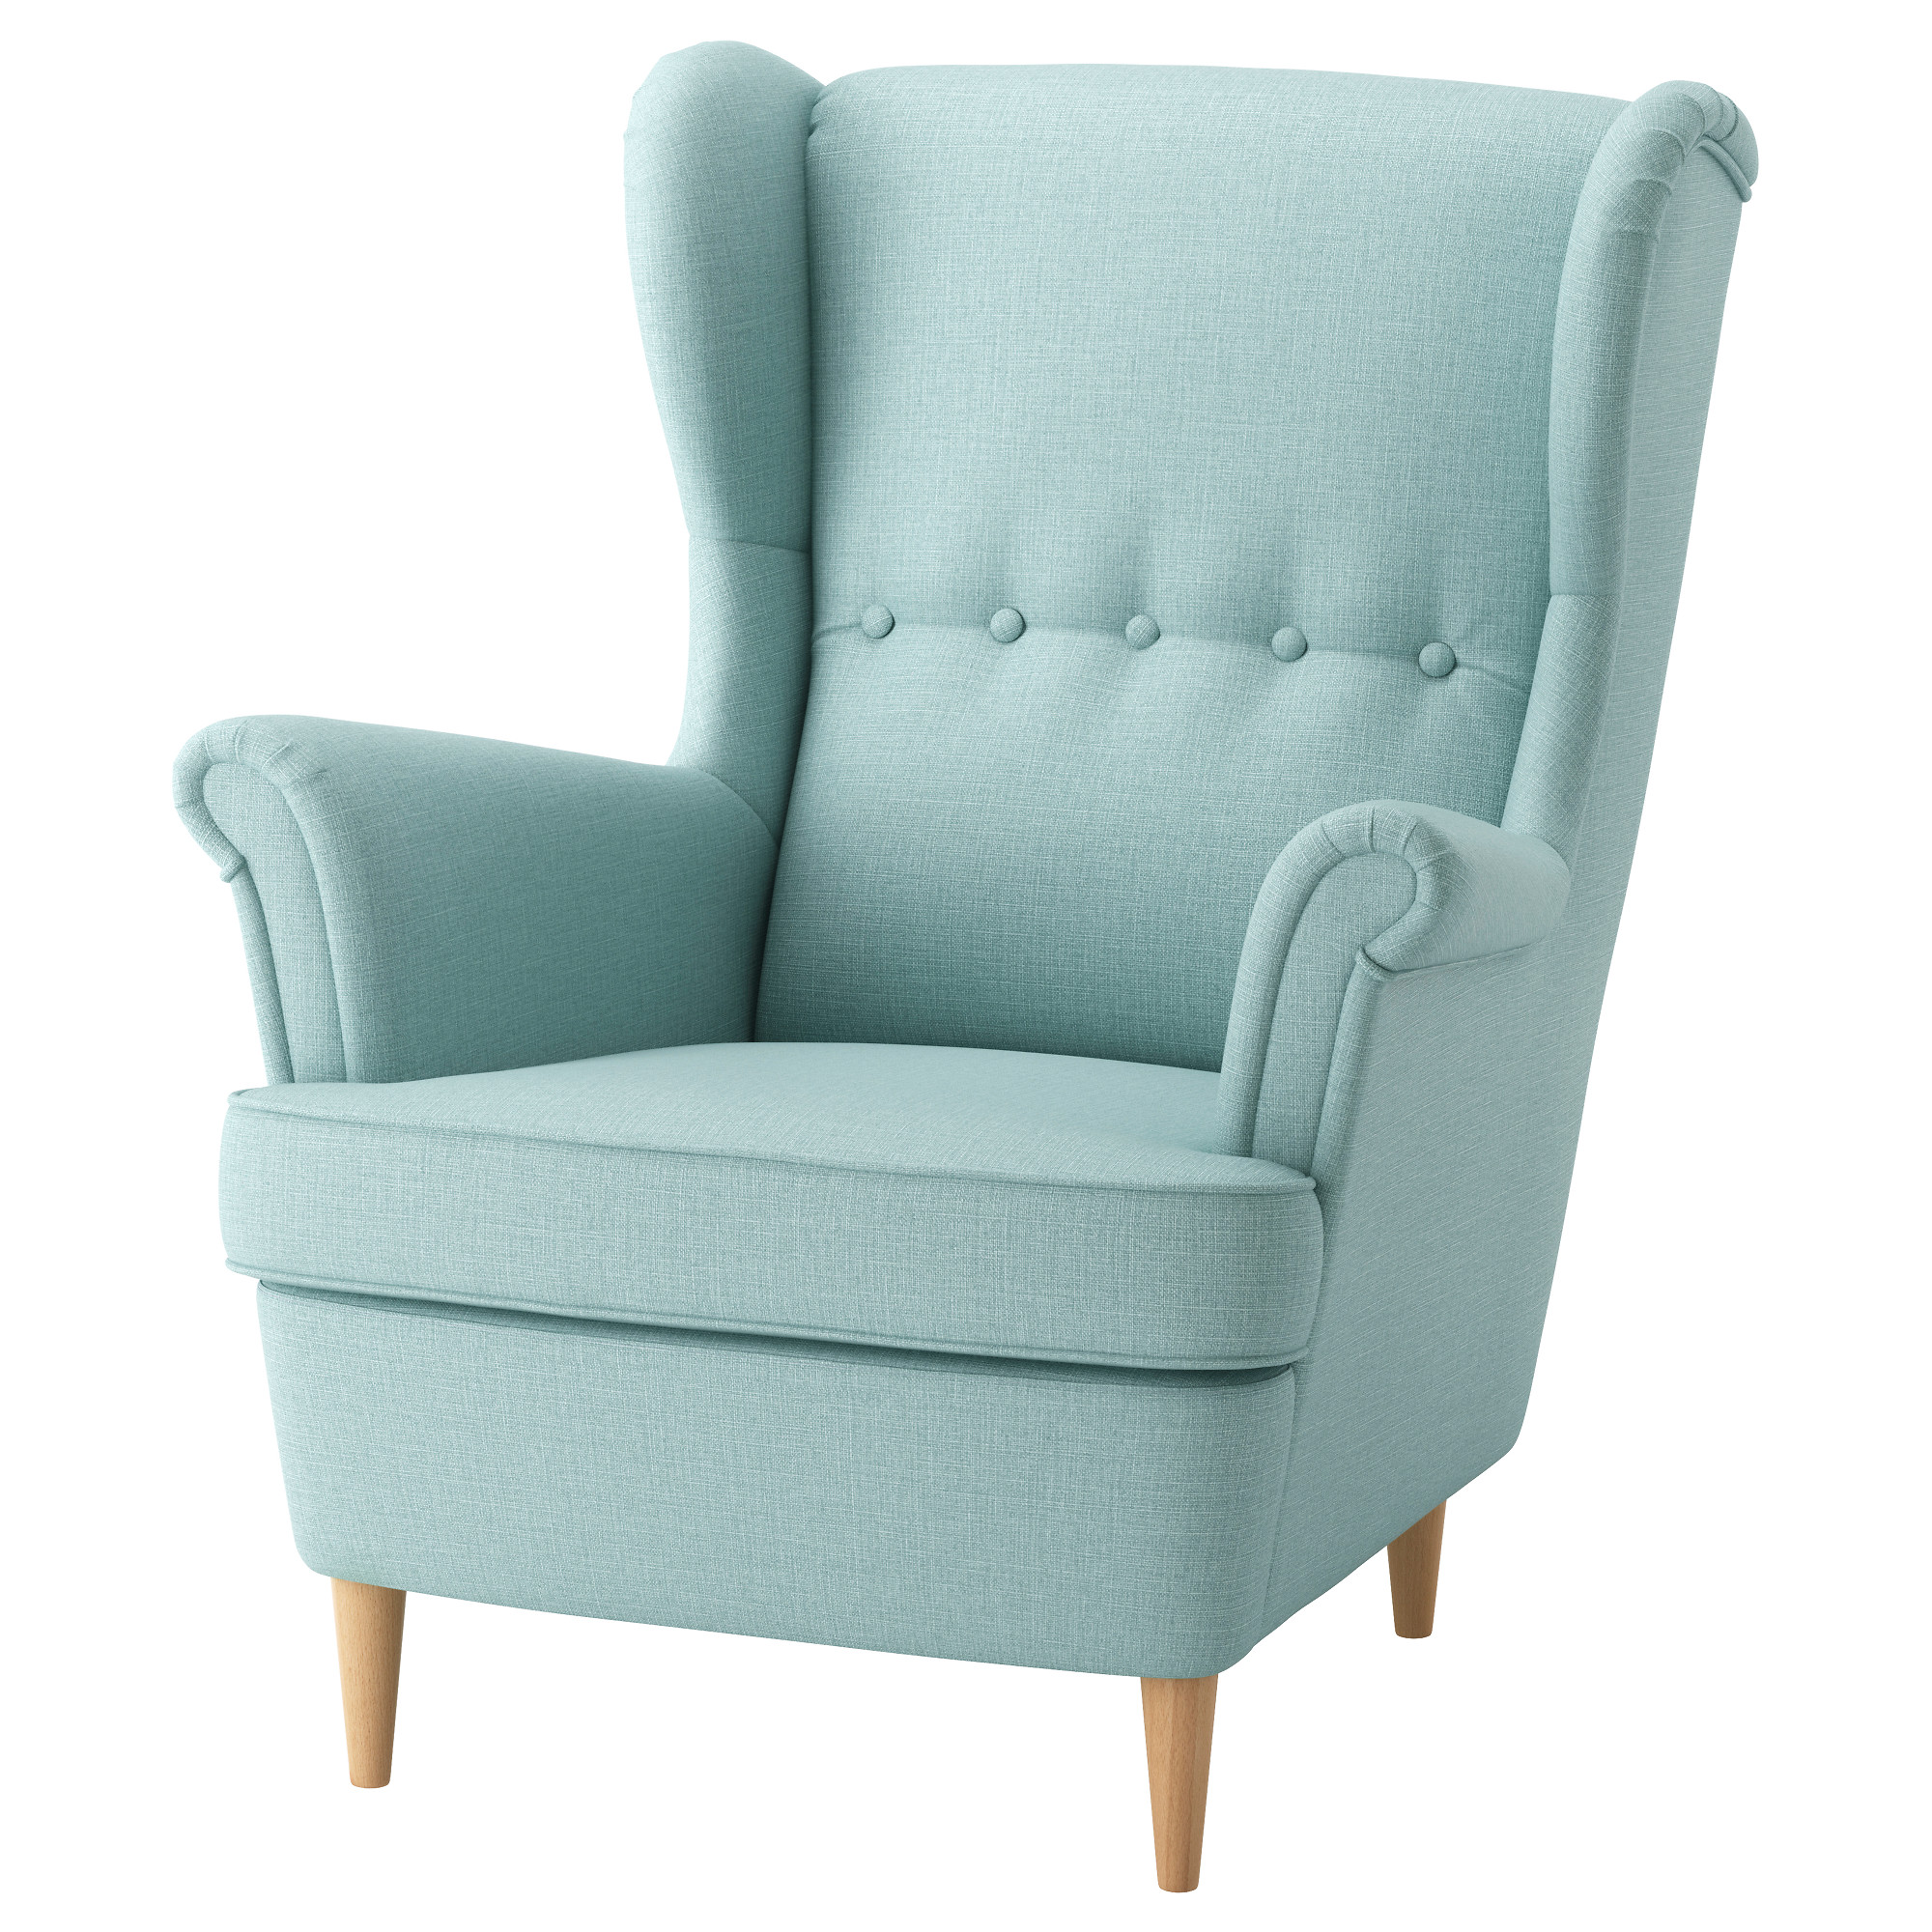 Teal wingback chair - Teal Wingback Chair 11